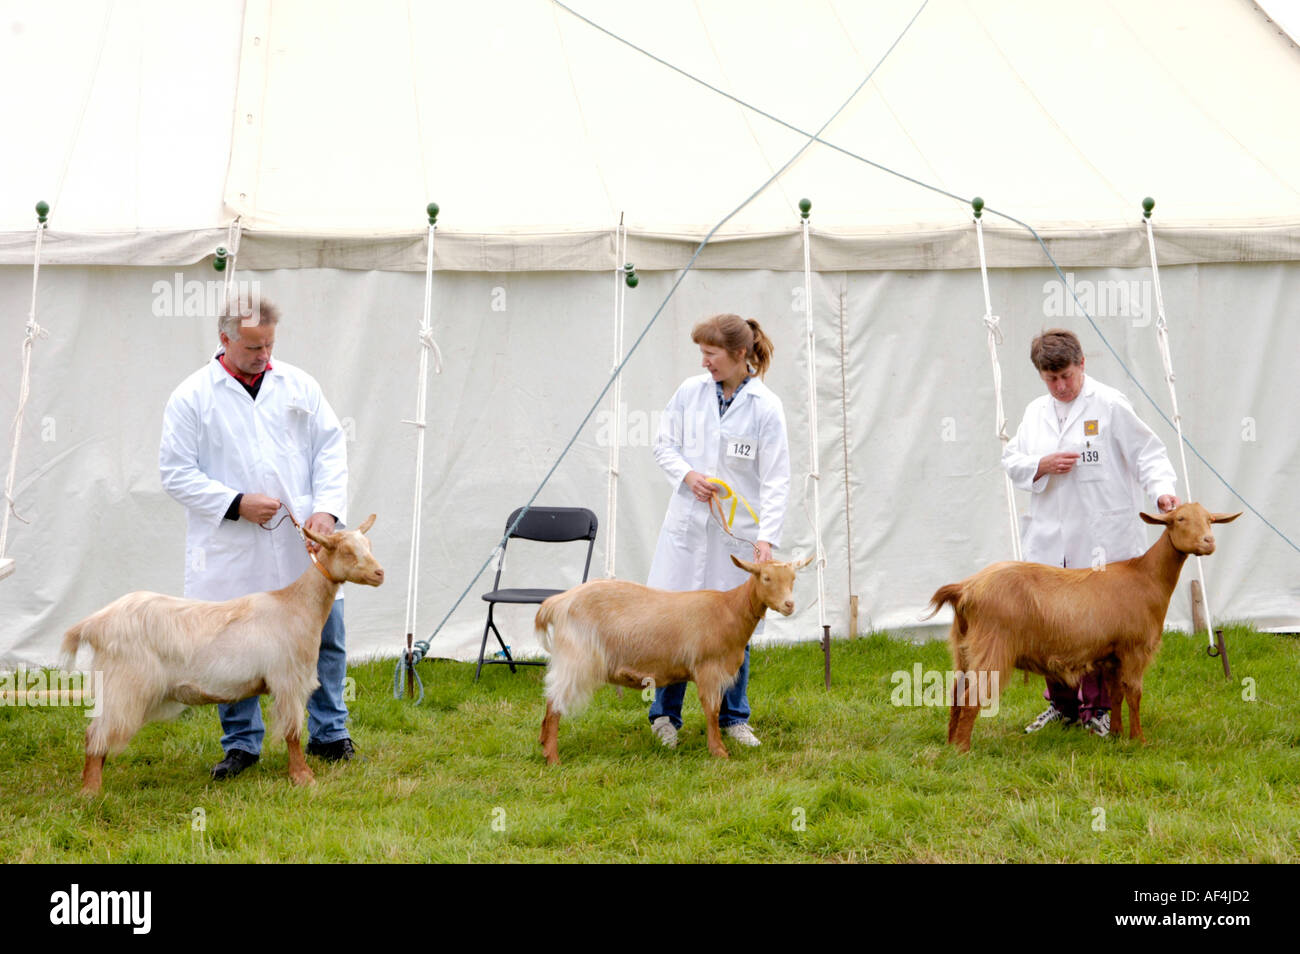 Showing goats at Brecknockshire Agricultural Society annual show in its 250th year in the market town of Brecon Powys Wales UK - Stock Image